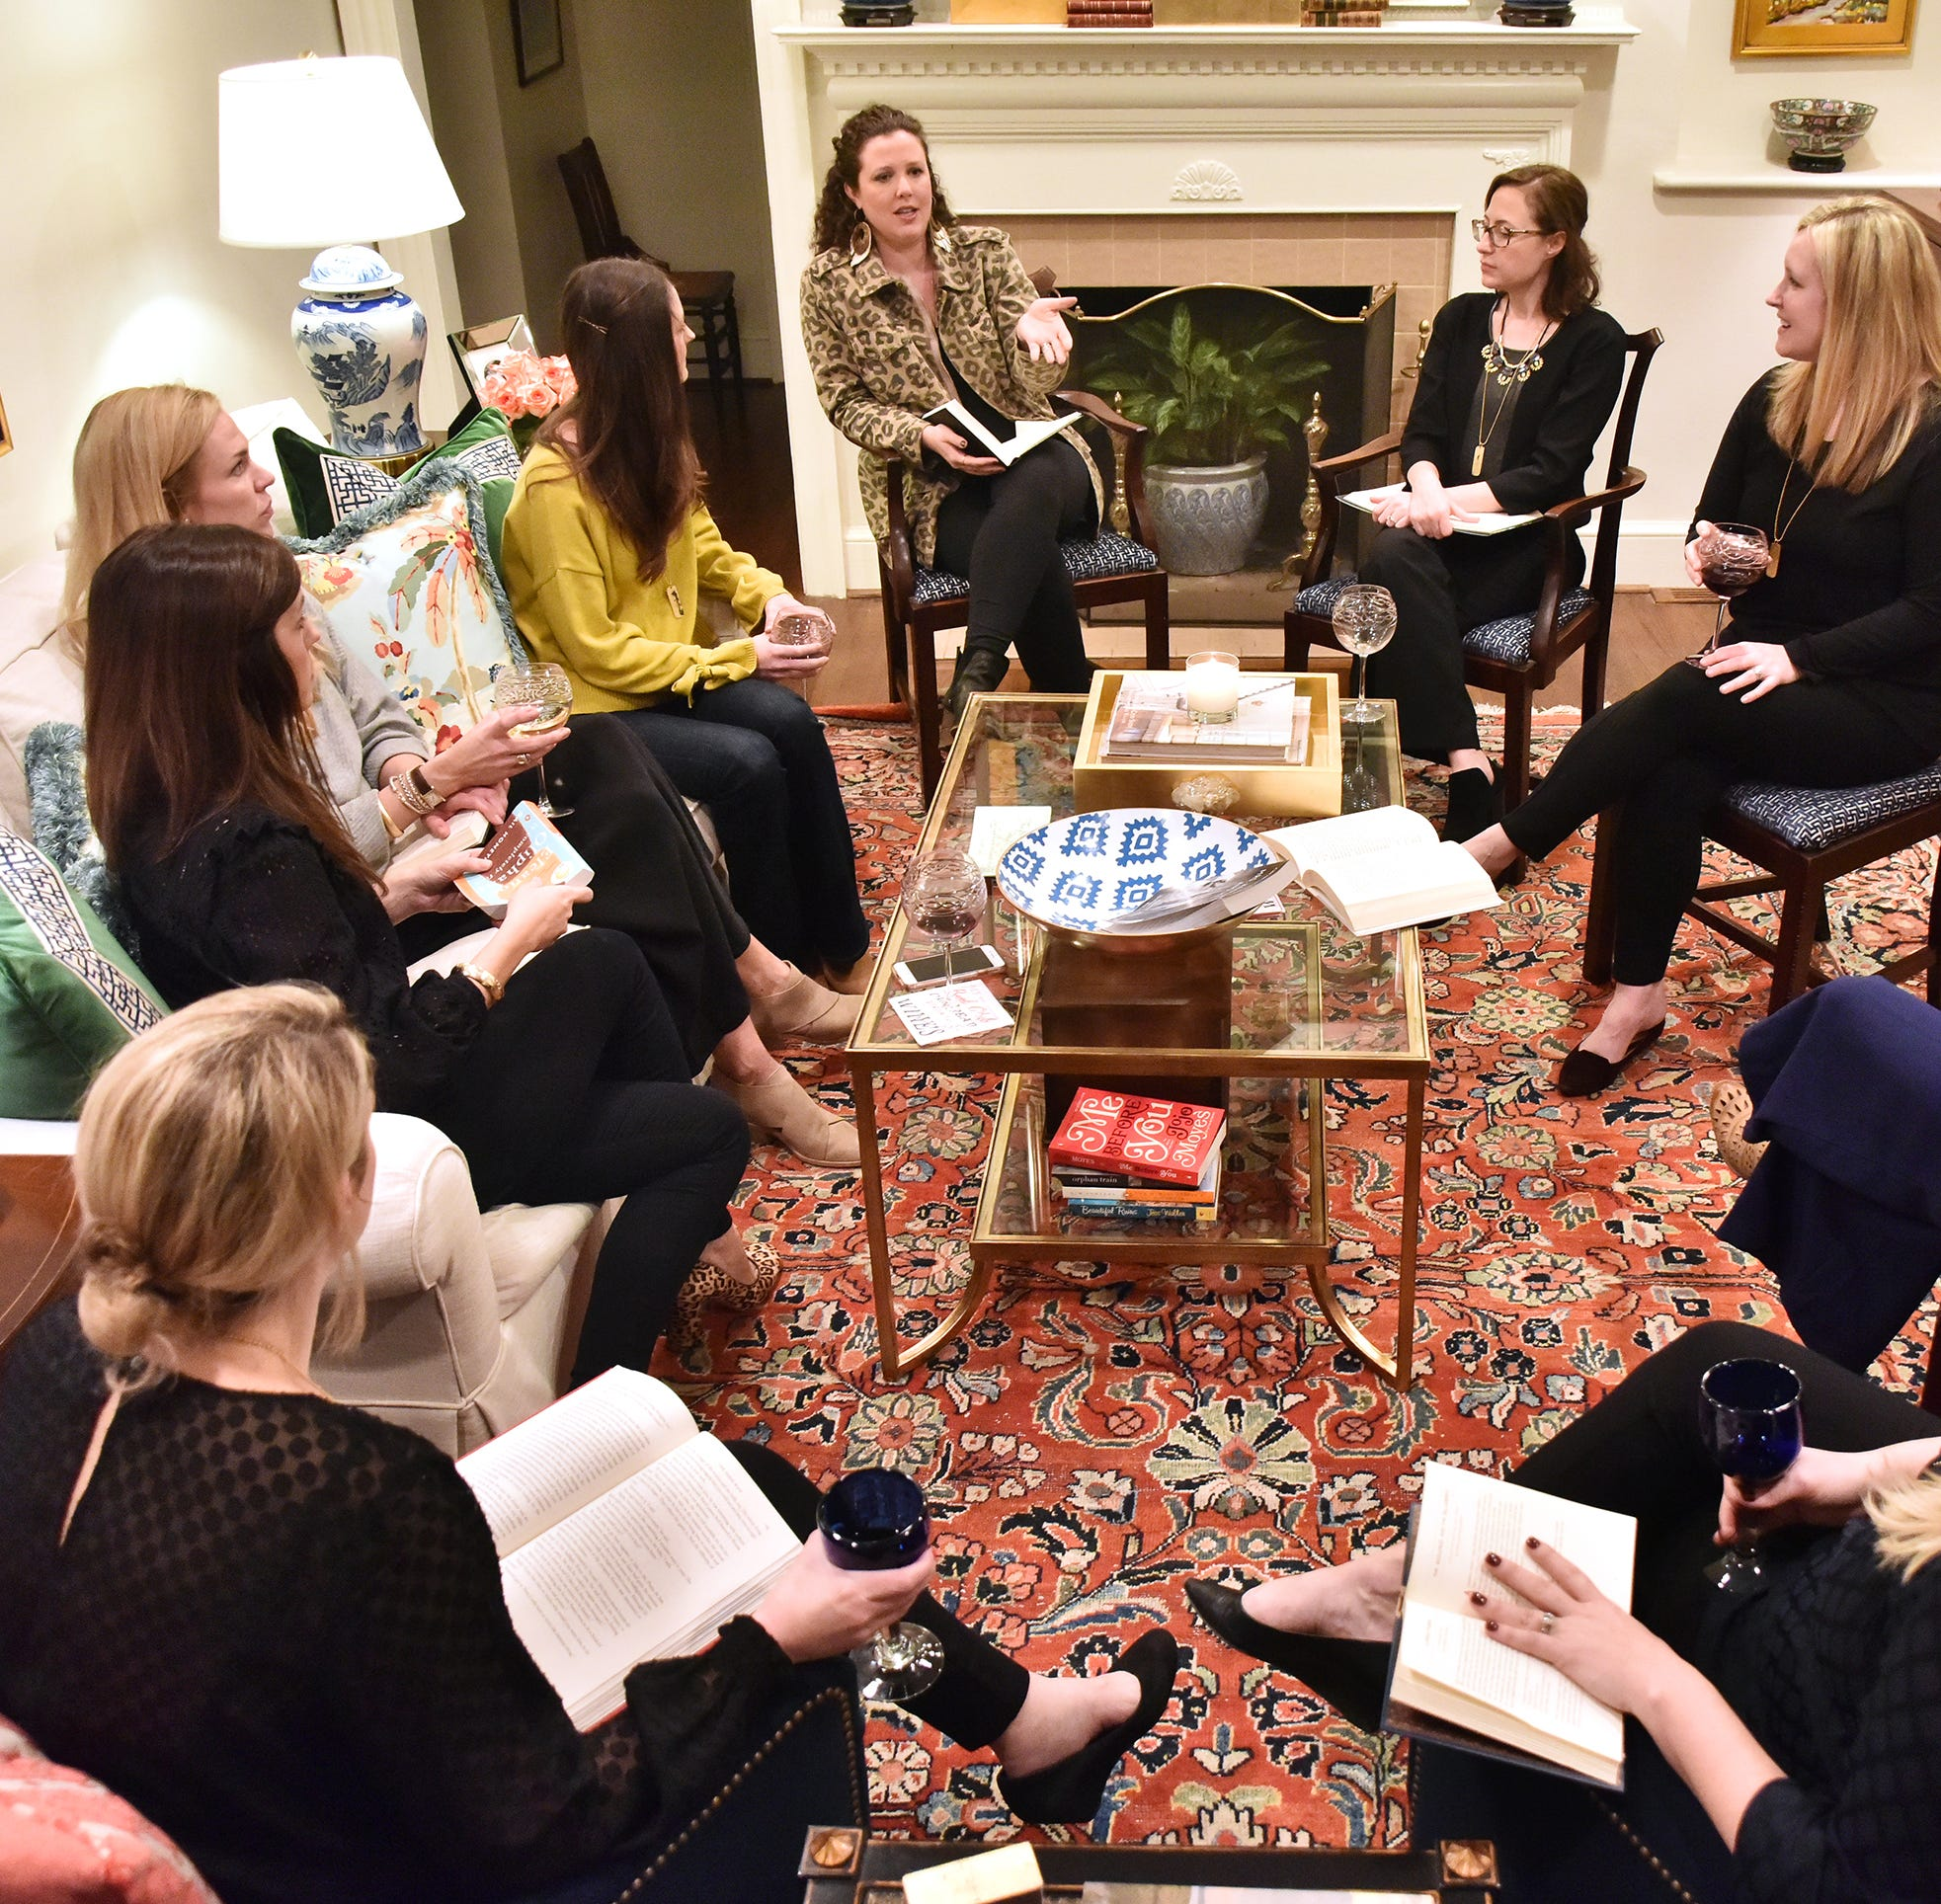 Yes, you can start a book club!